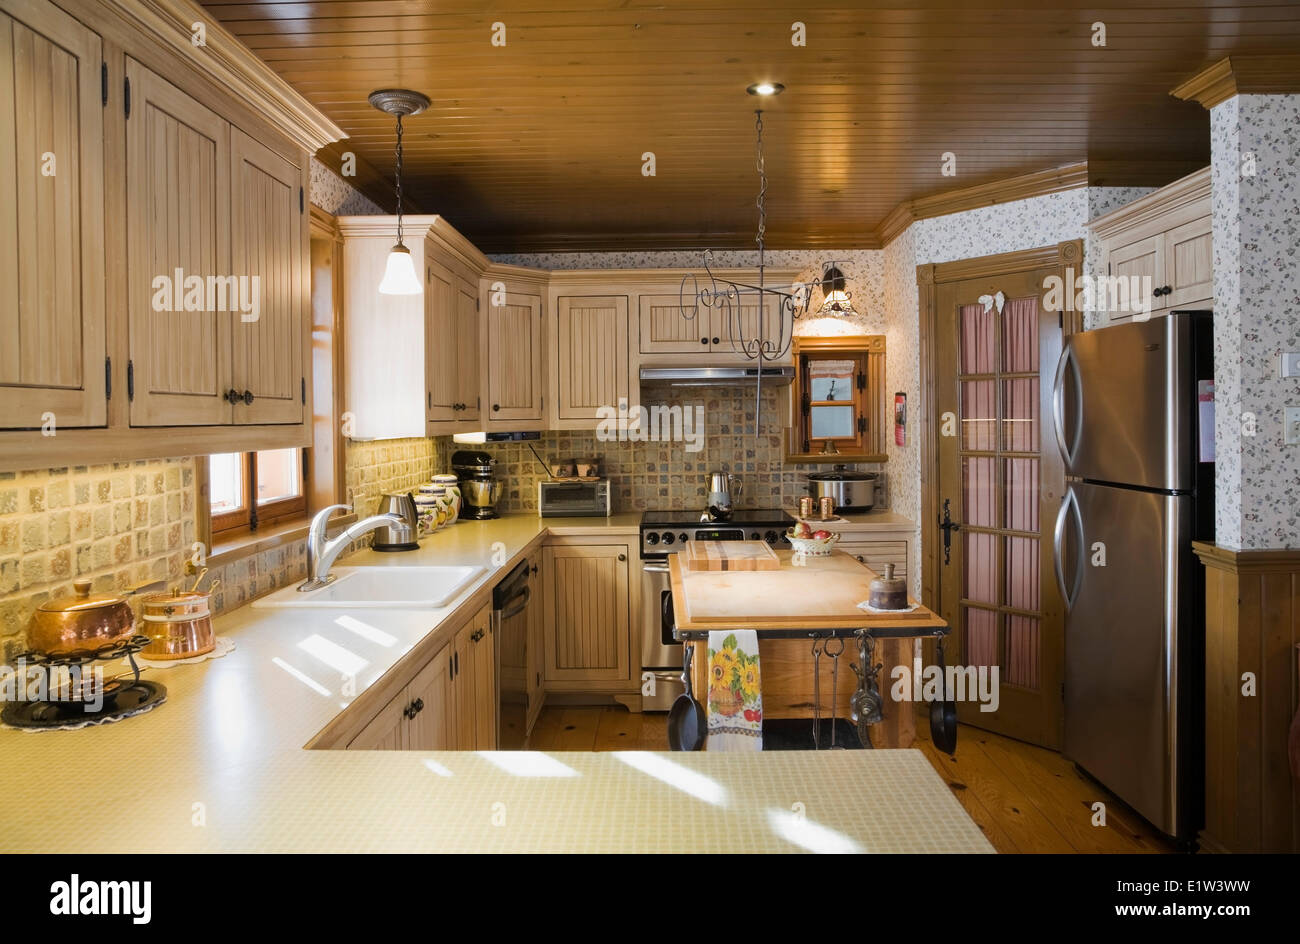 Country Style Kitchen Inside A Canadiana Cottage Fieldstone Residential Home Built To Look Old In 2002 Lanaudiere Quebec